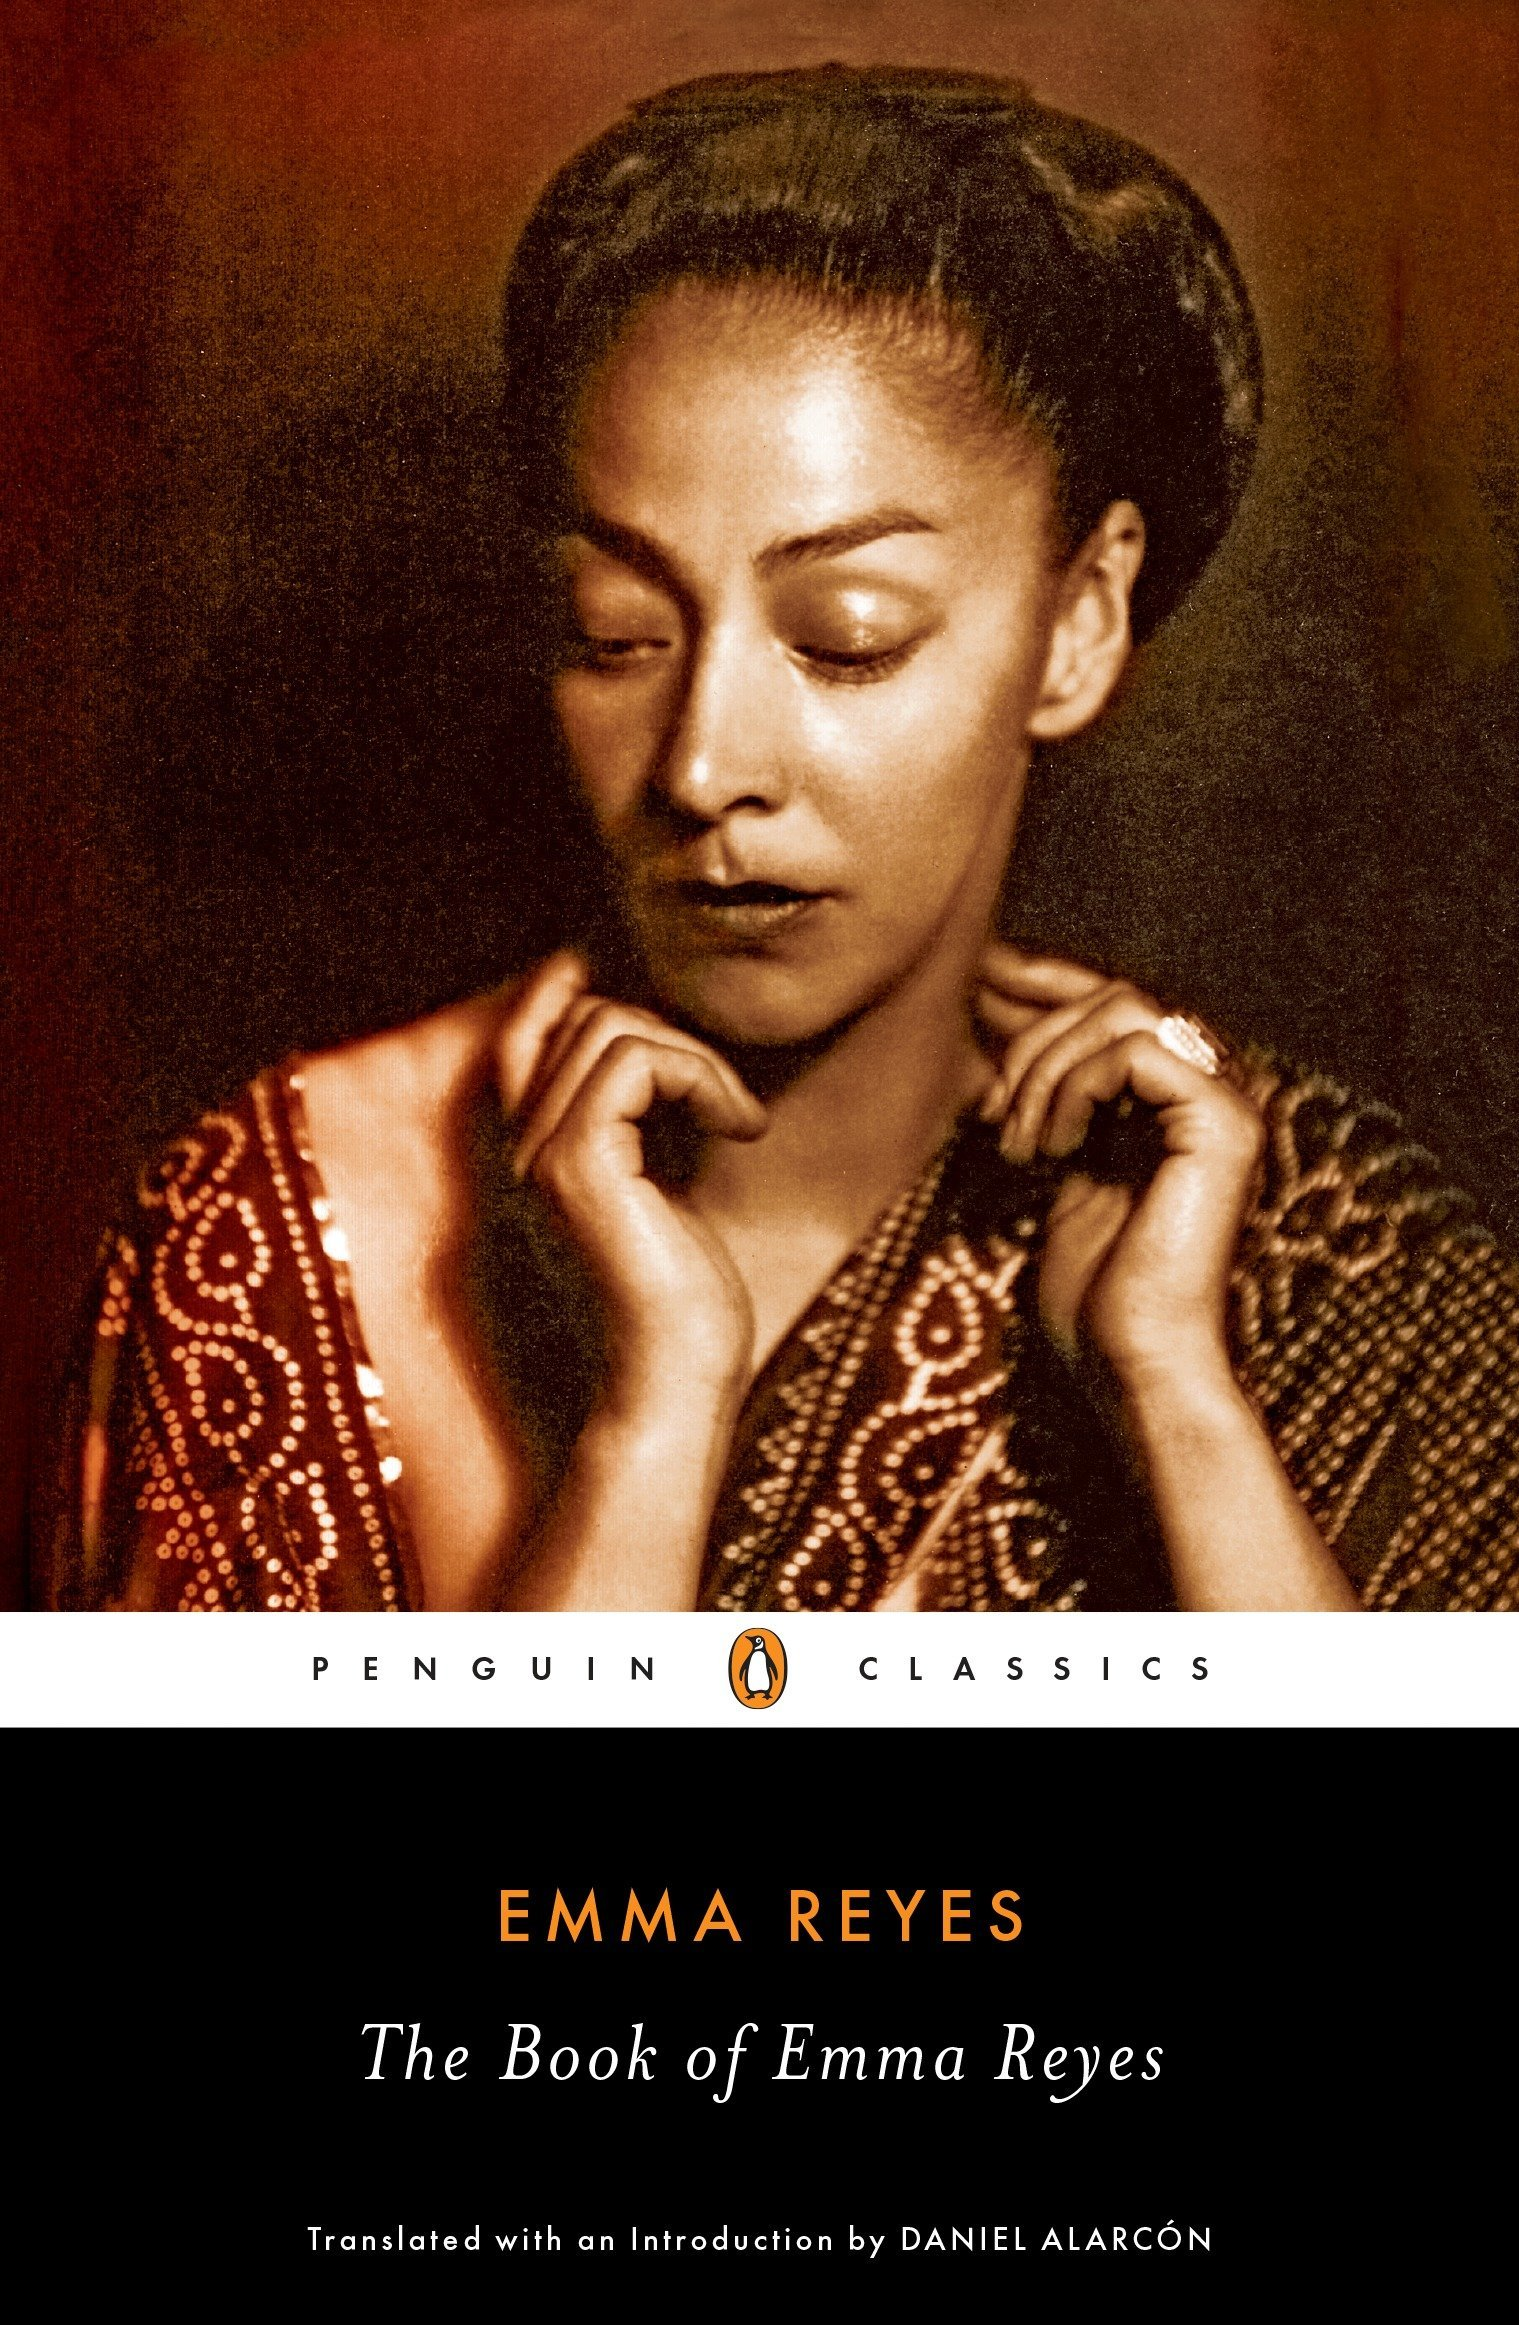 The Book of Emma Reyes: A Memoir (Penguin Classics) Paperback – August 7, 2018 Daniel Alarcón 0143108697 Biography/Autobiography GENERAL